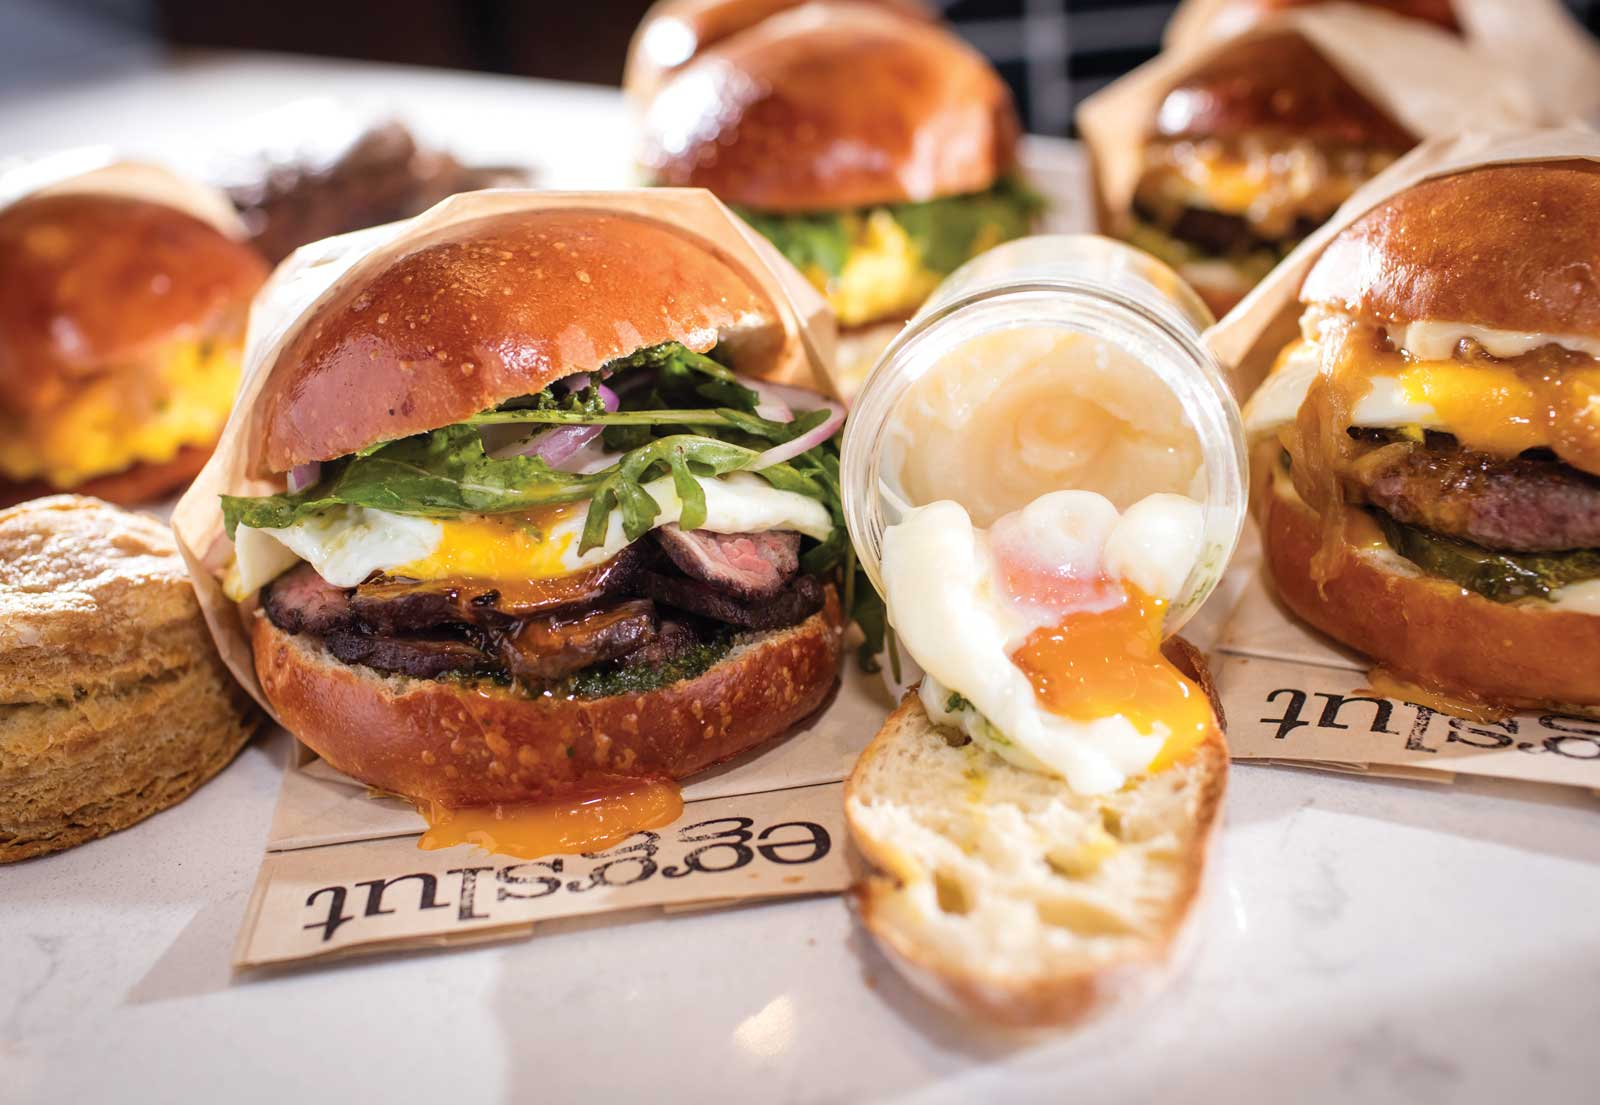 Try breakfast on the twisted side at Eggslut.